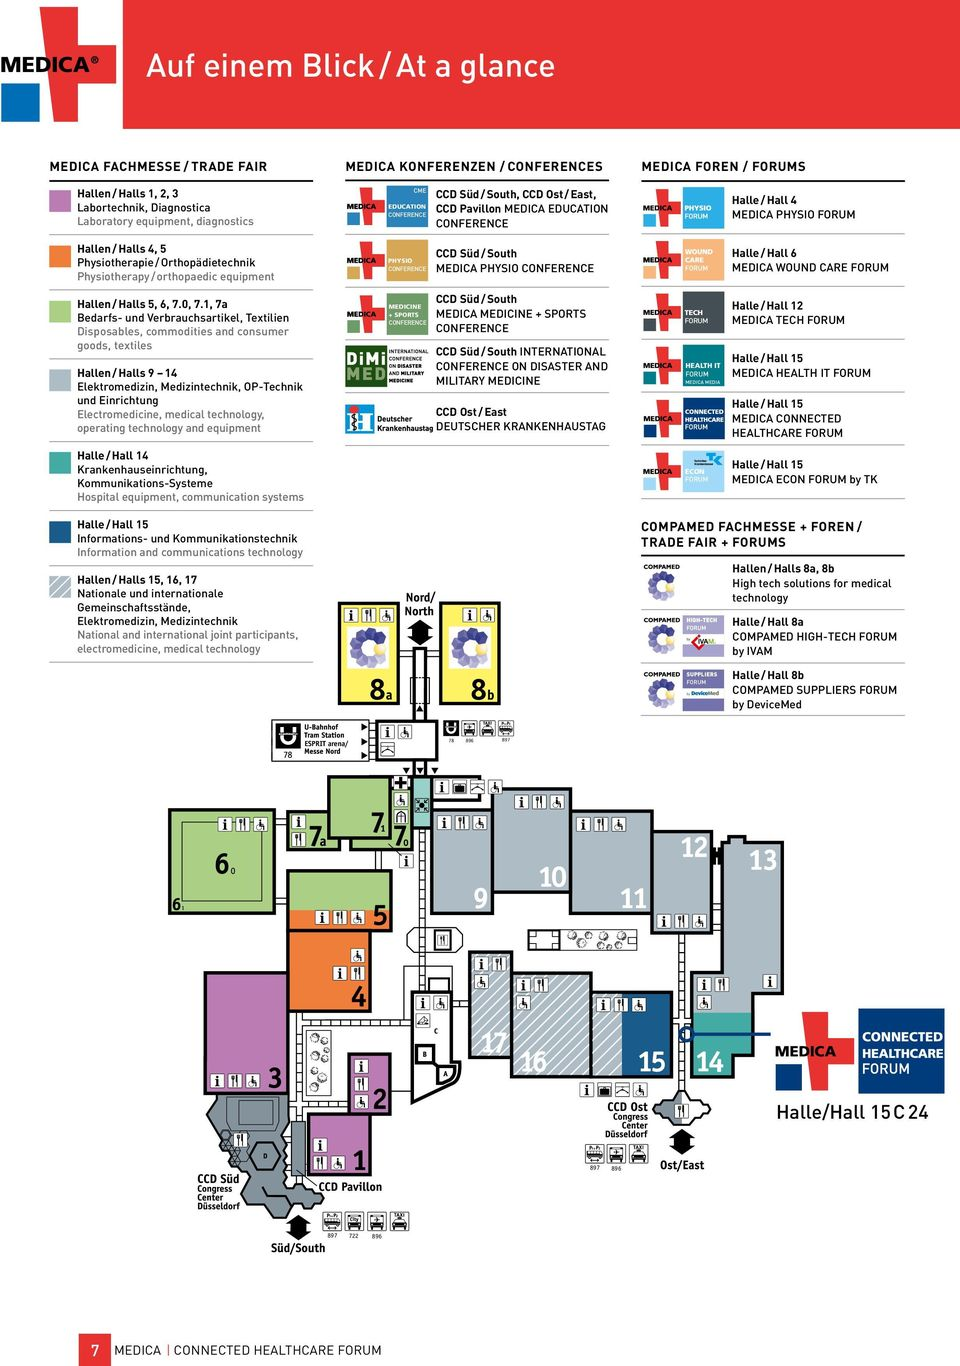 PHYSIO CCD Süd / South MEDICA PHYSIO Halle / Hall 6 MEDICA WOUND CARE FORUM Hallen / Halls 5, 6, 7.0, 7.